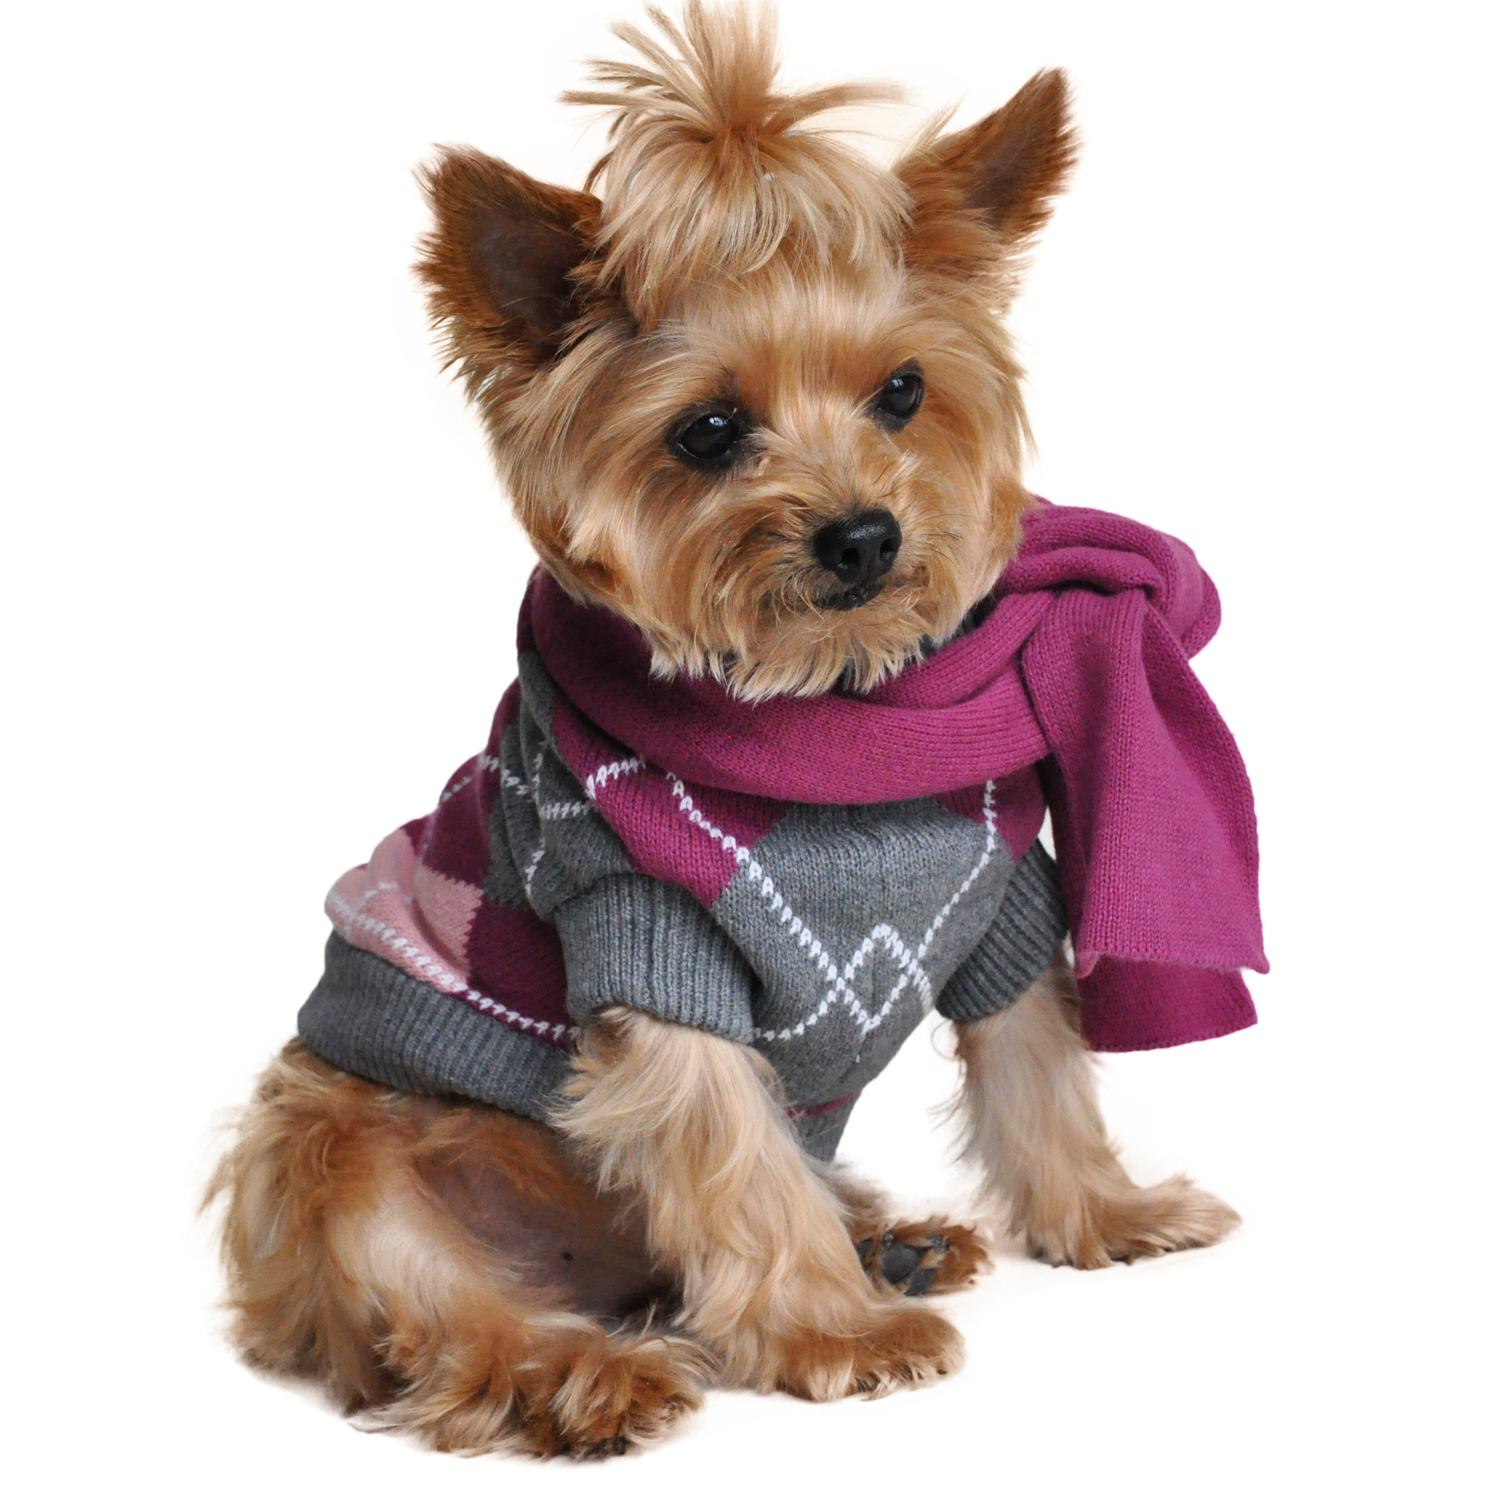 Argyle Purple Dog Sweater with Scarf by Doggie Design